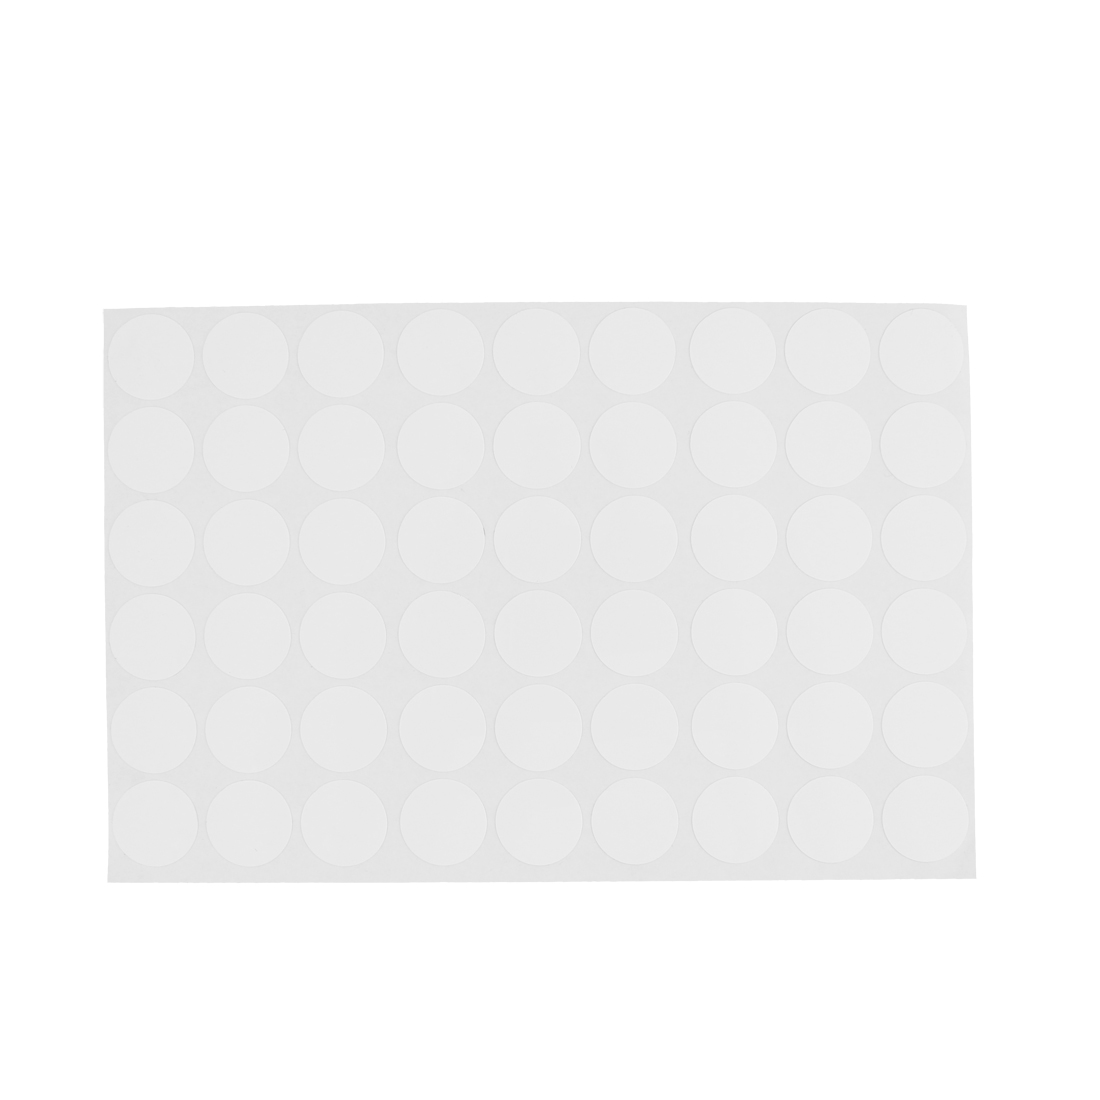 Wardrobe Cabinet Self-adhesive Screw Covers Caps Stickers White 54 in 1